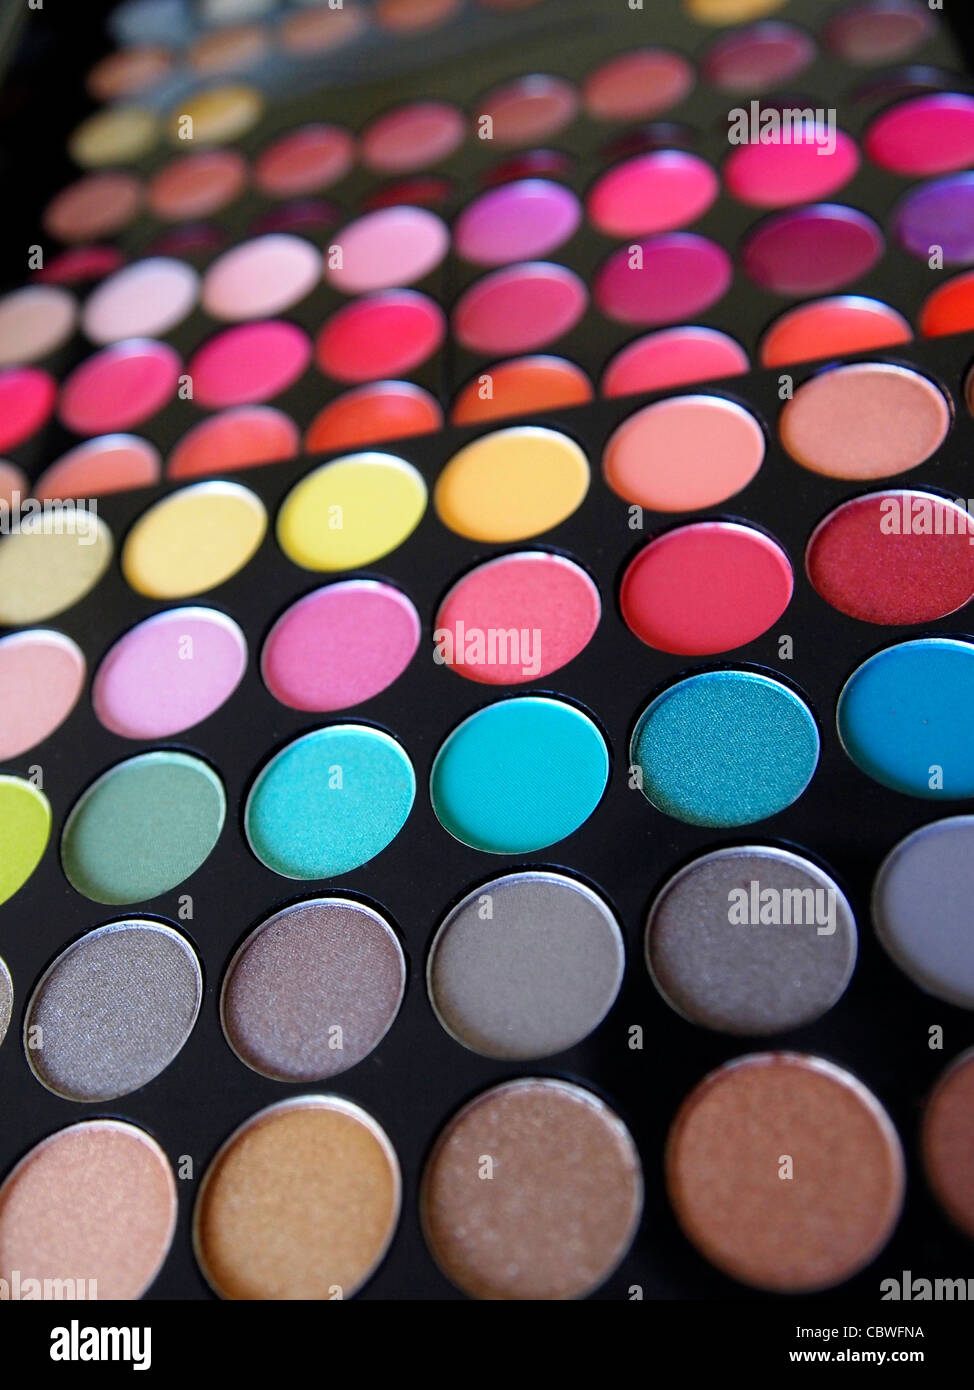 Eyeshadow box colors - Stock Image